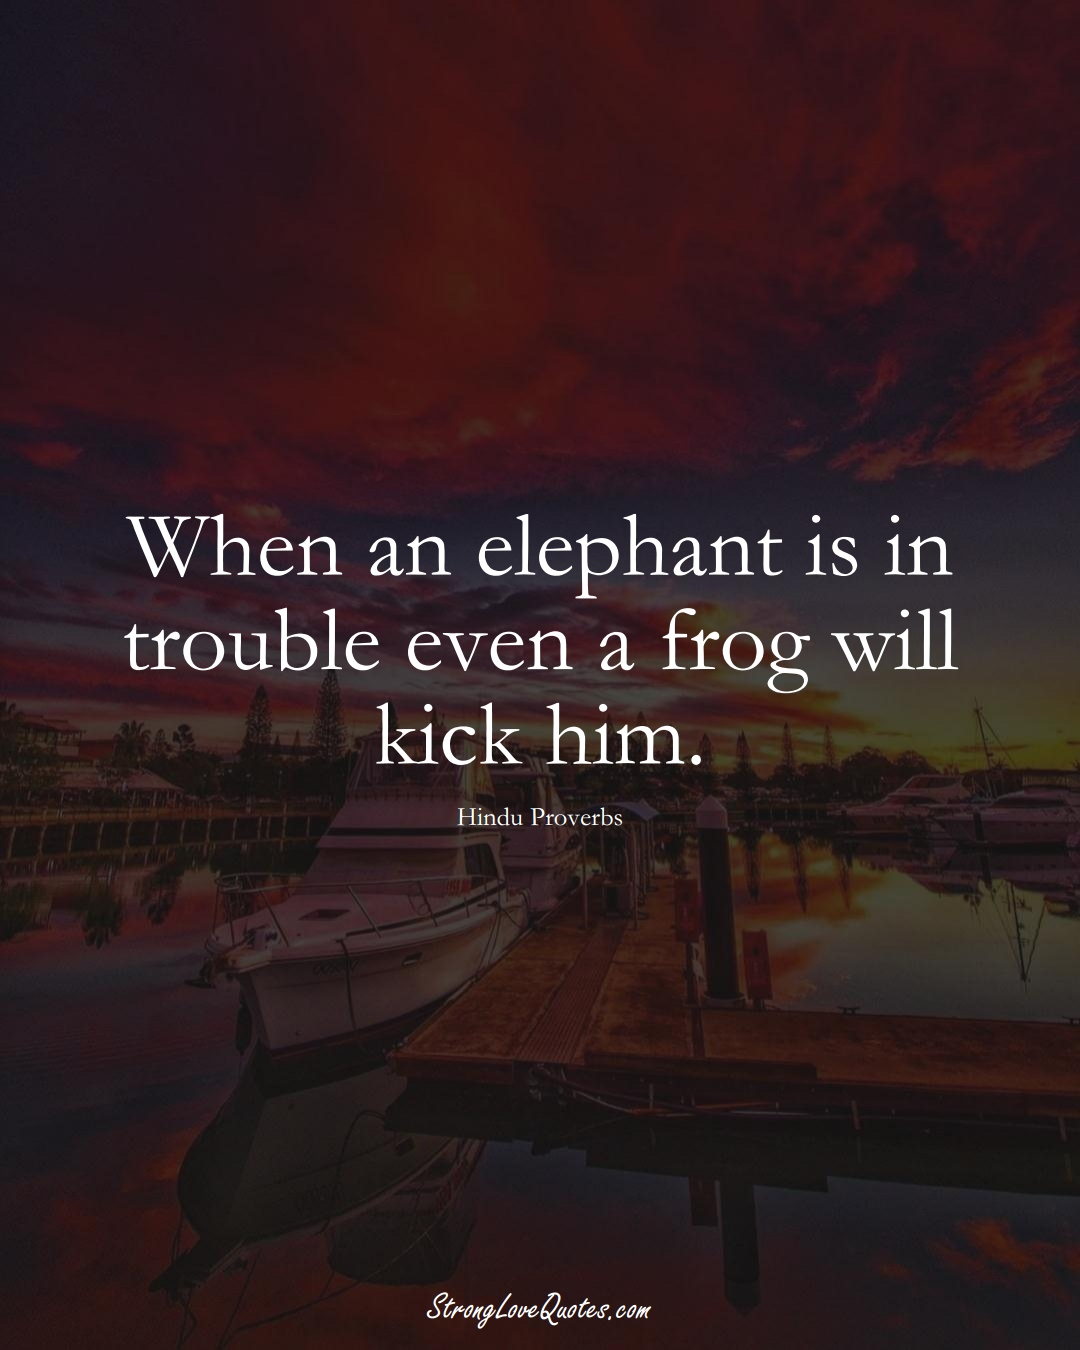 When an elephant is in trouble even a frog will kick him. (Hindu Sayings);  #aVarietyofCulturesSayings